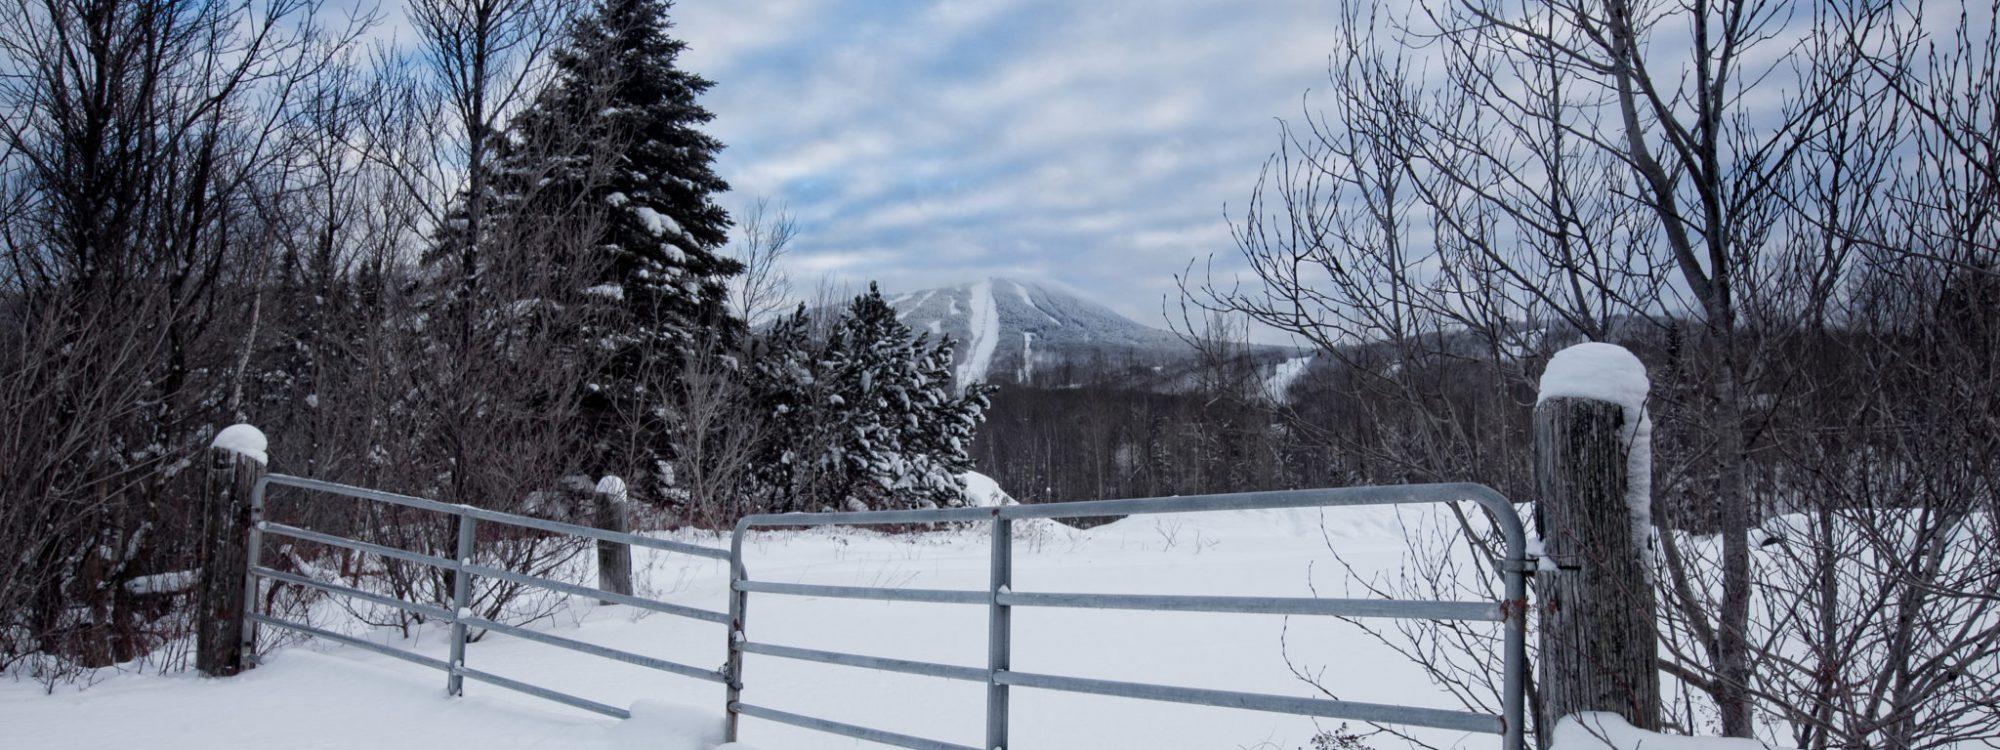 Killington Mountain with snowy slopes